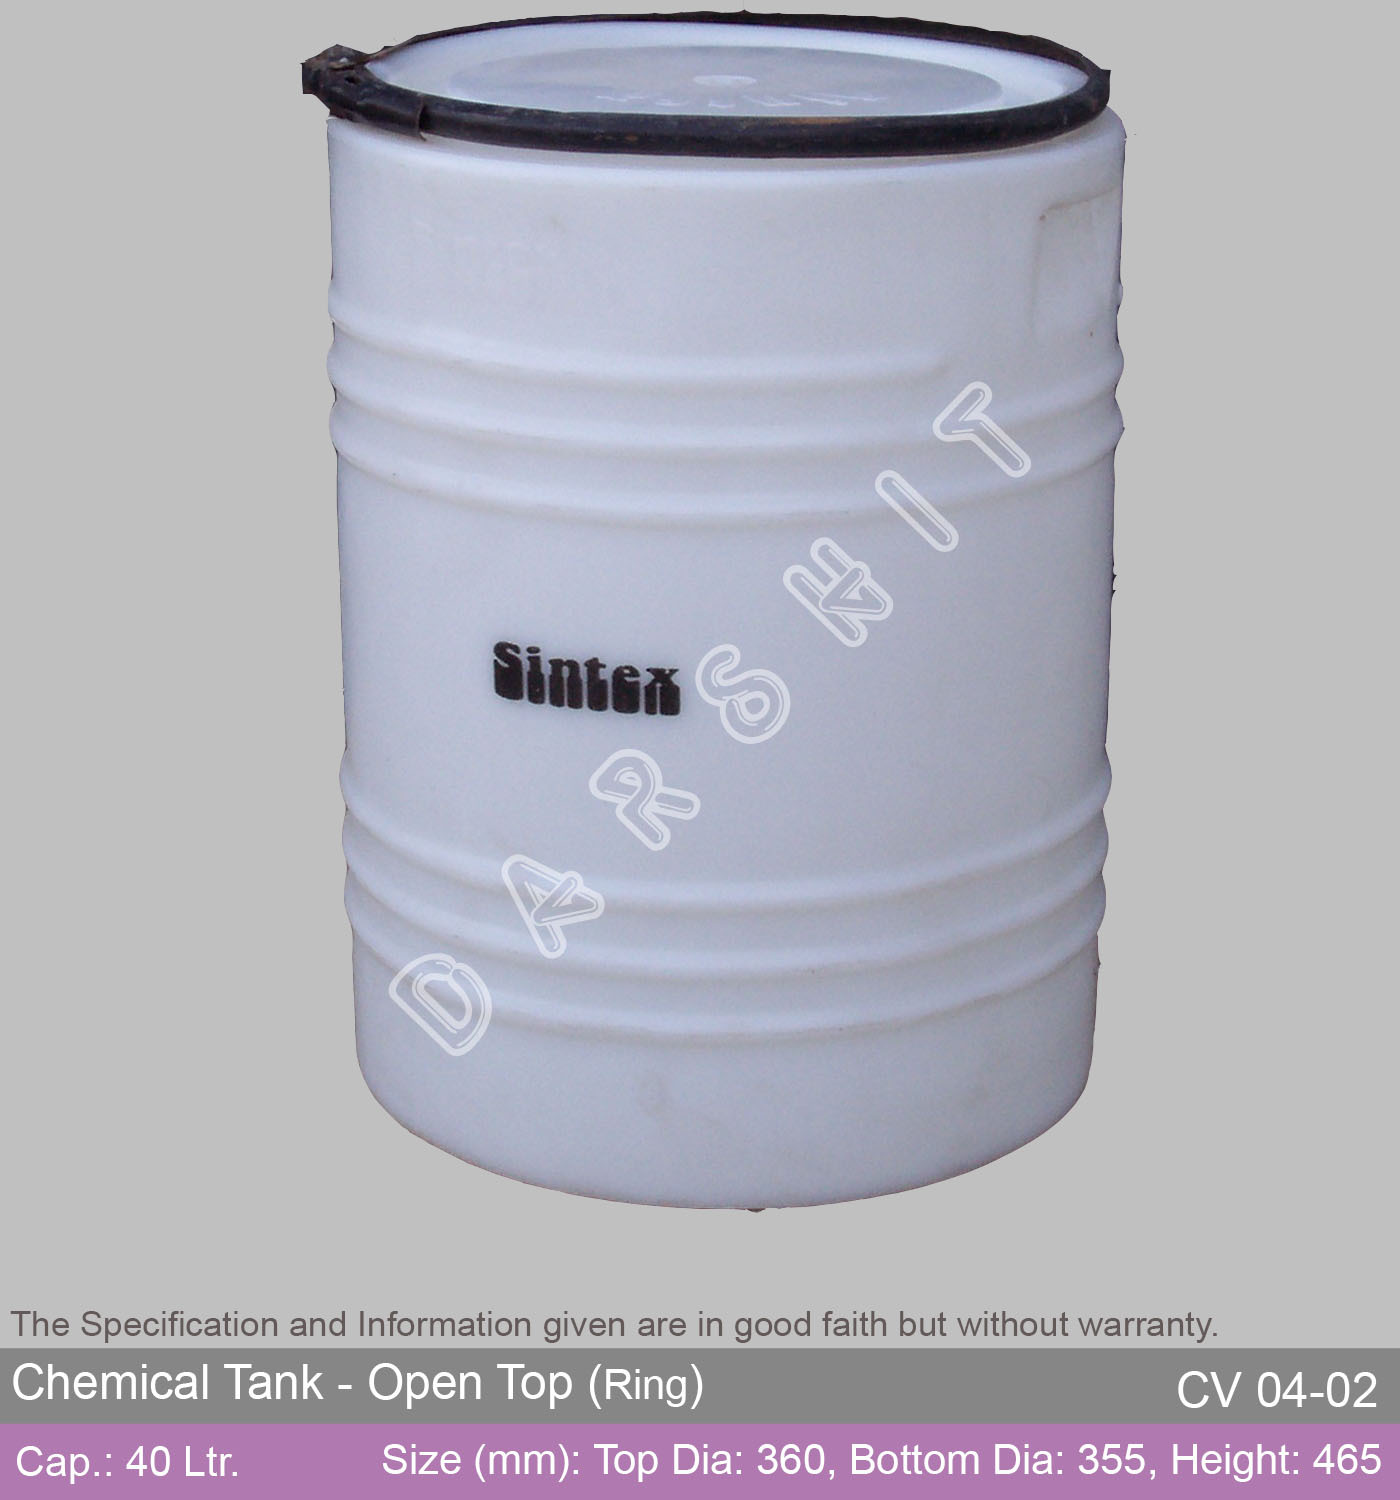 Sintex Open Top Chemical Storage Tank